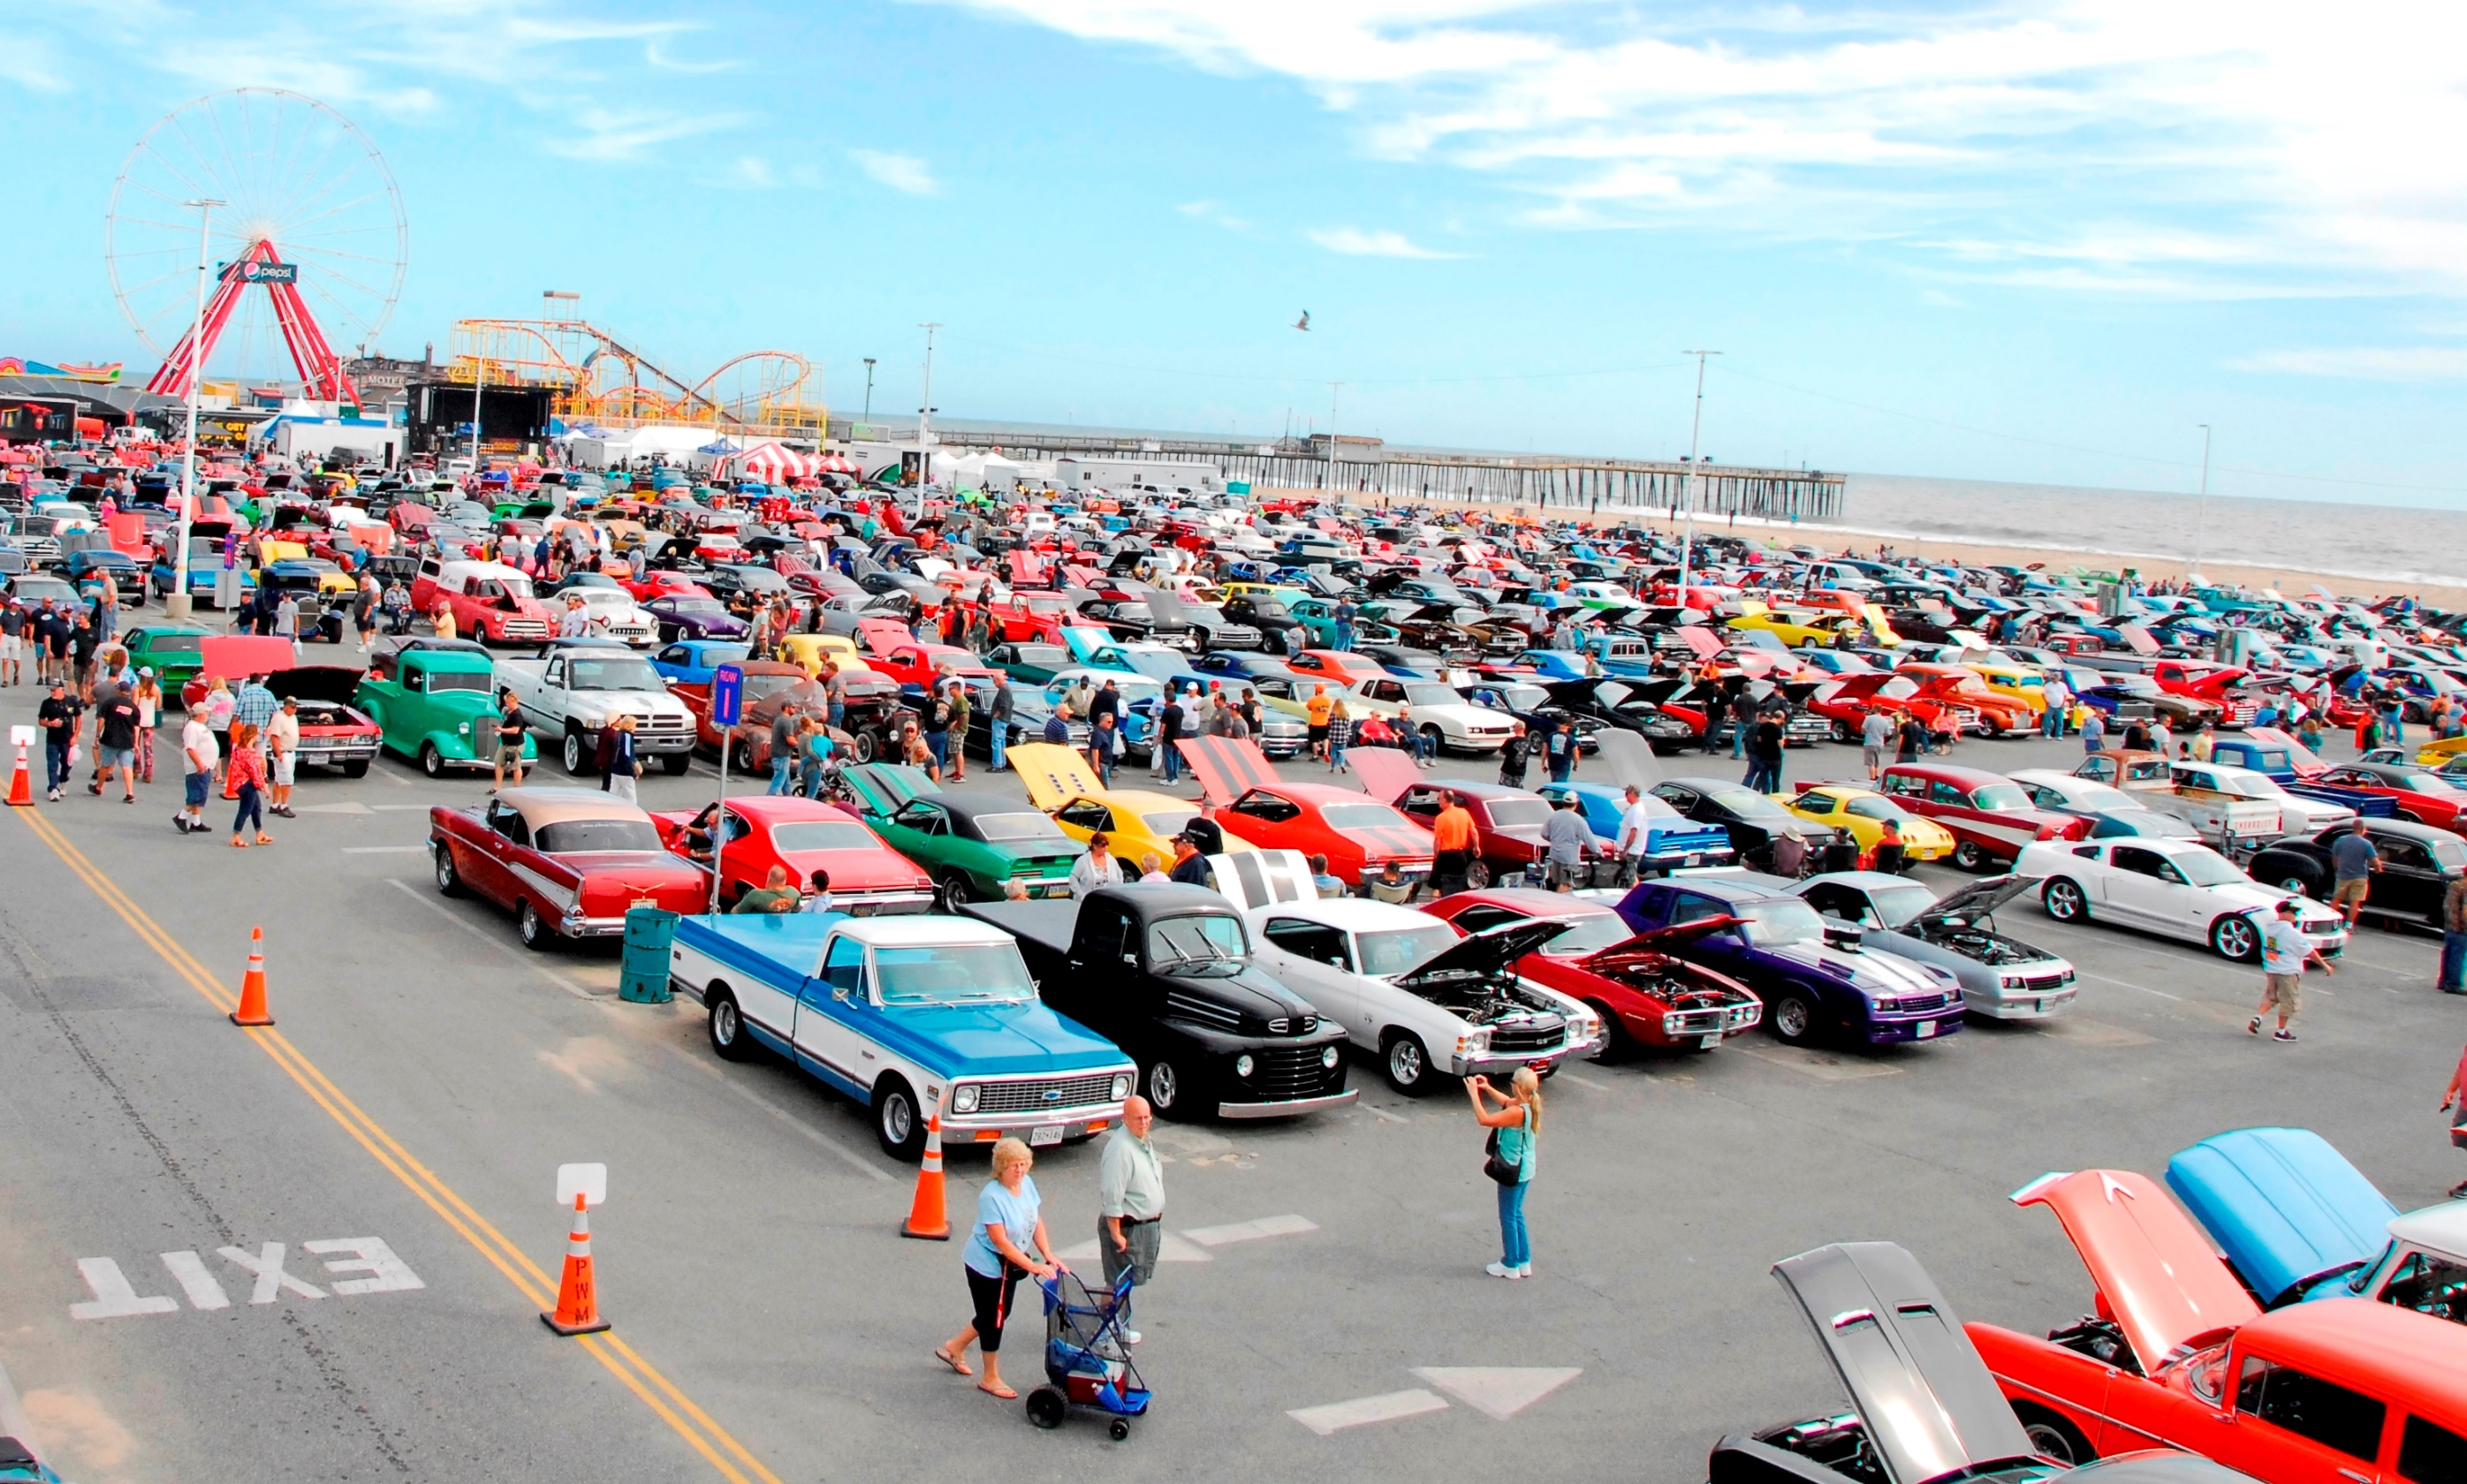 Ocean City Maryland Car Show This Weekend